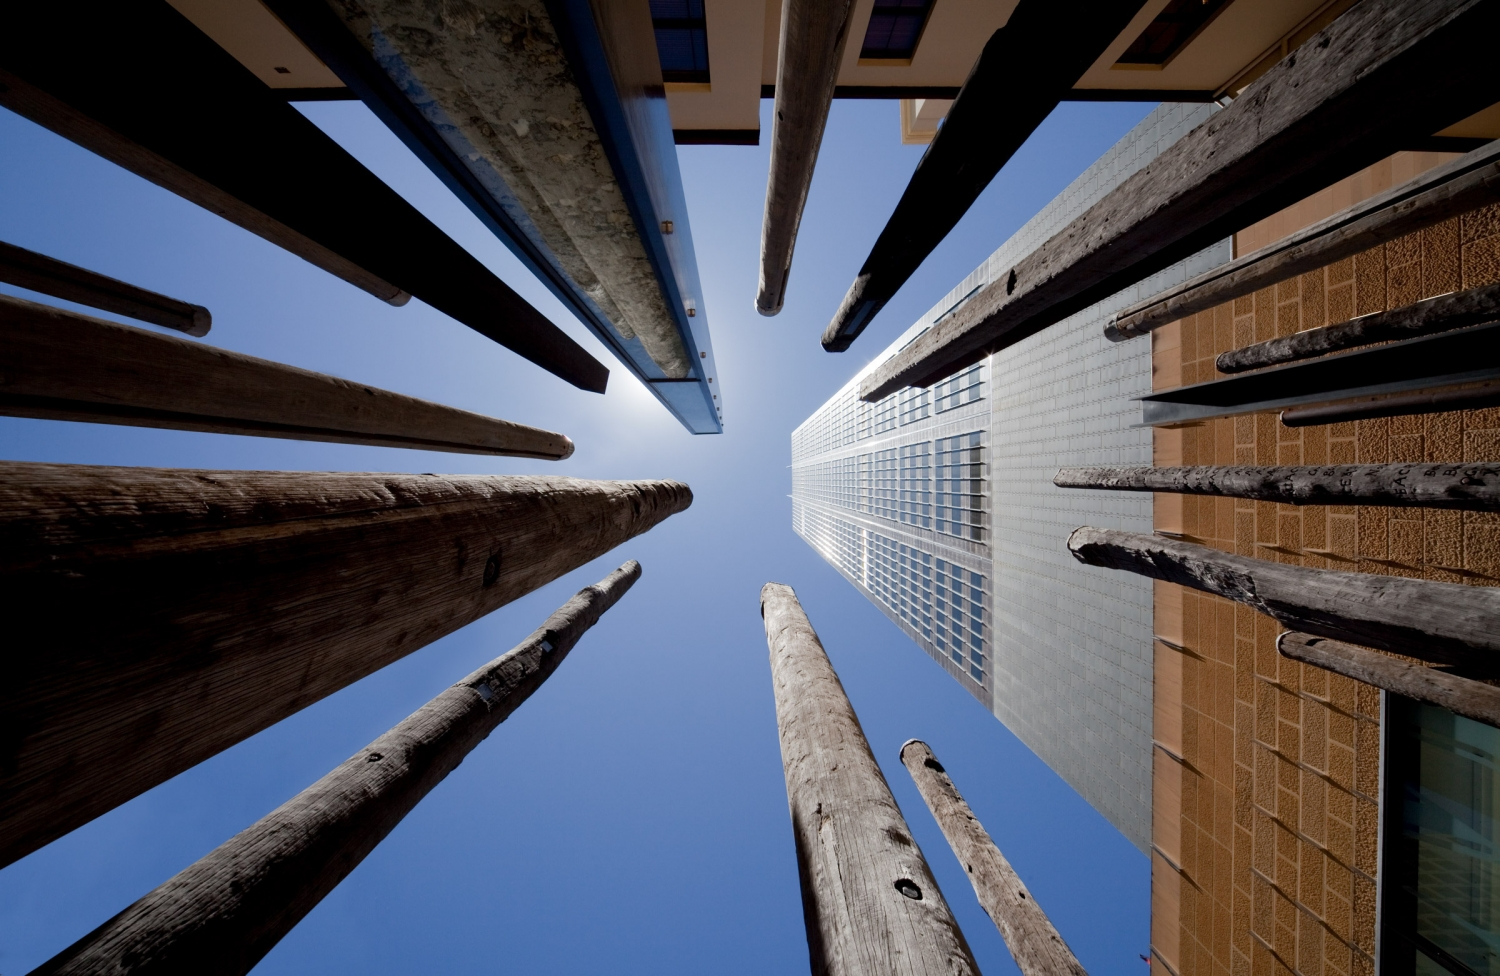 Looking up at sky from below sculptural elements, with tall building and sunlight reflecting.